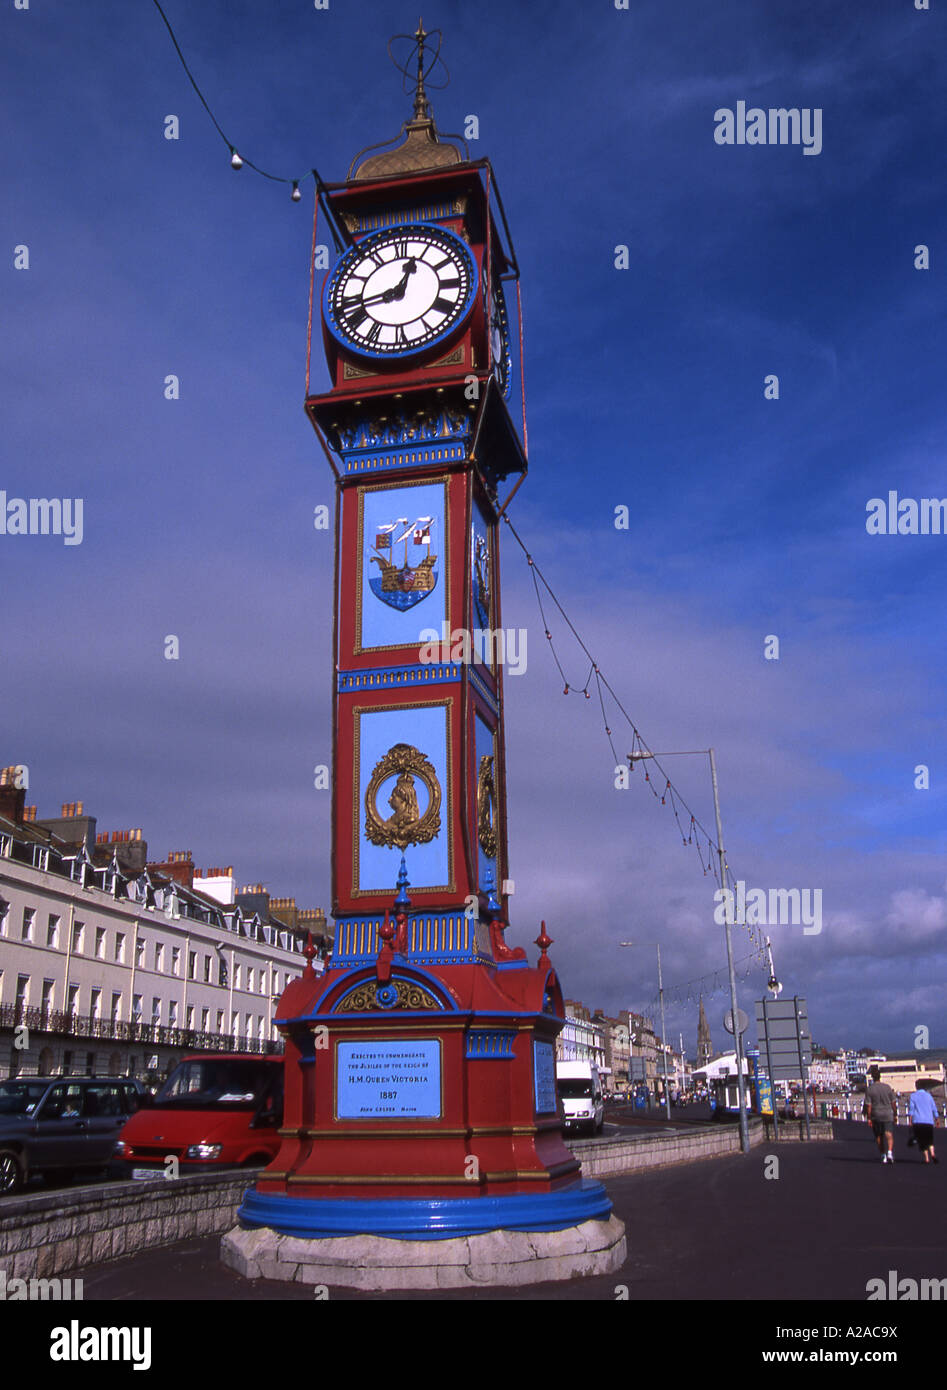 Jubiliee Clock Tower on the Esplanade at Weymouth, Dorset - Stock Image